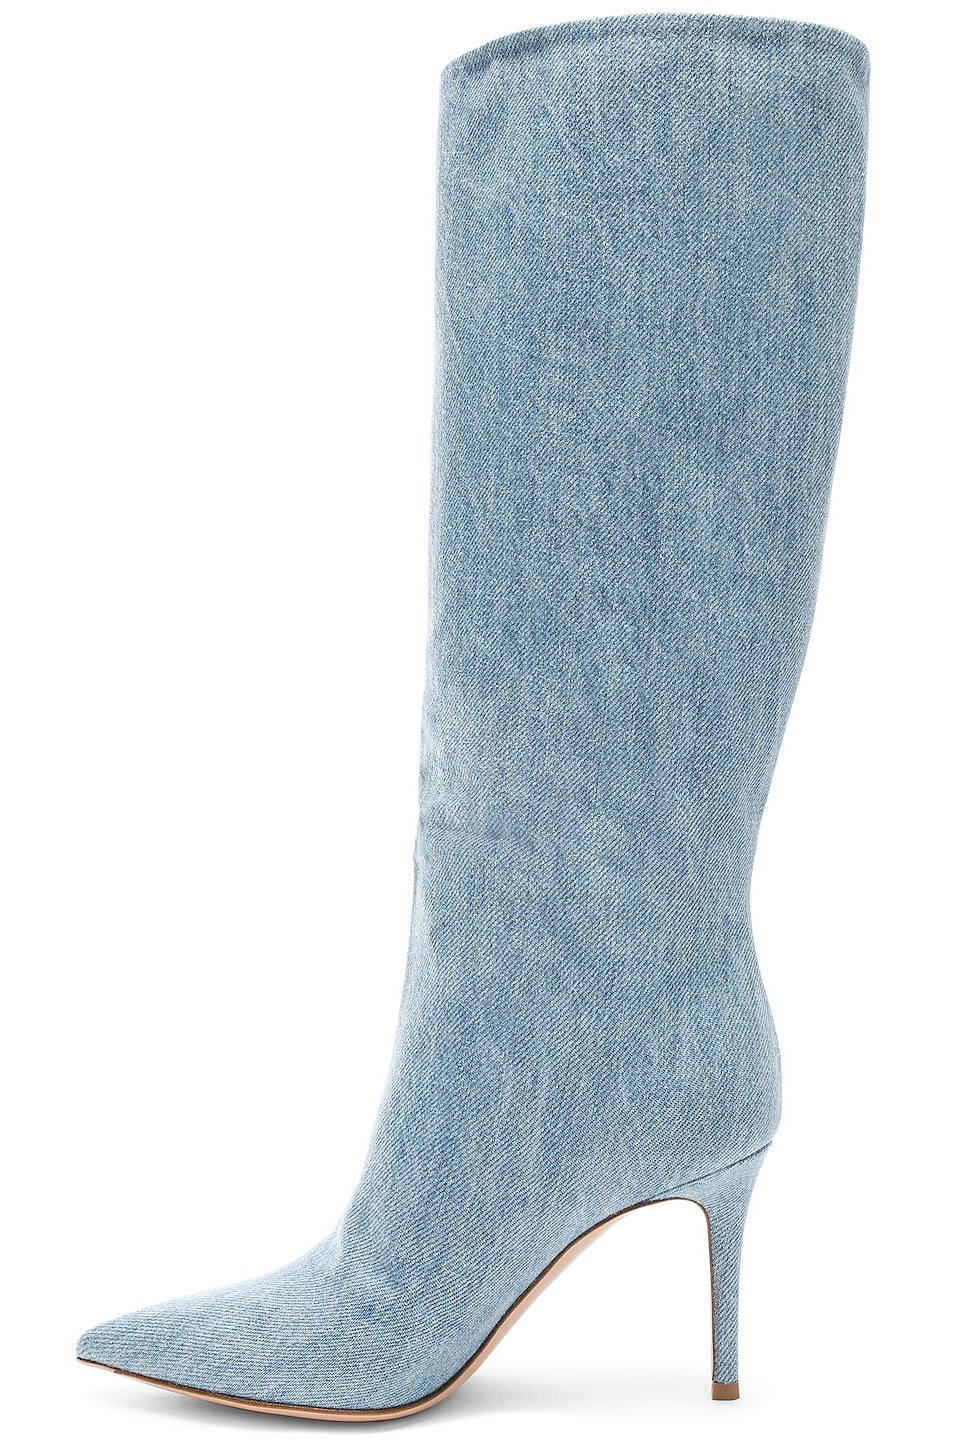 Image 5 of Gianvito Rossi Denim Boots in Stonewash